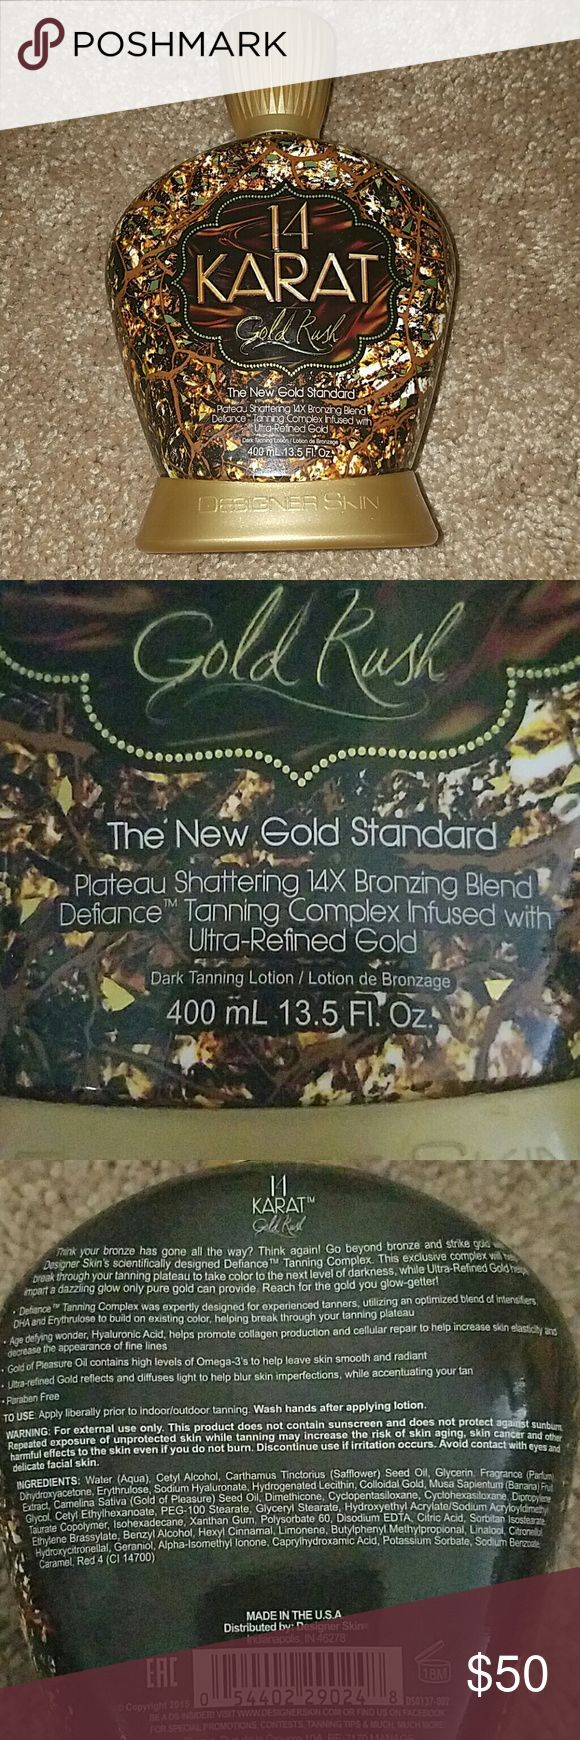 14 Karat Gold Rush tanning lotion Designer Skin Supposed to break the tanning plateau where you can't get any darker. It's brand new. I don't have time to tan with two small kids. I paid $60 for it at an upscale local tanning salon. I got a spray tan that day and never went back. Make an offer! Designer Skin Other